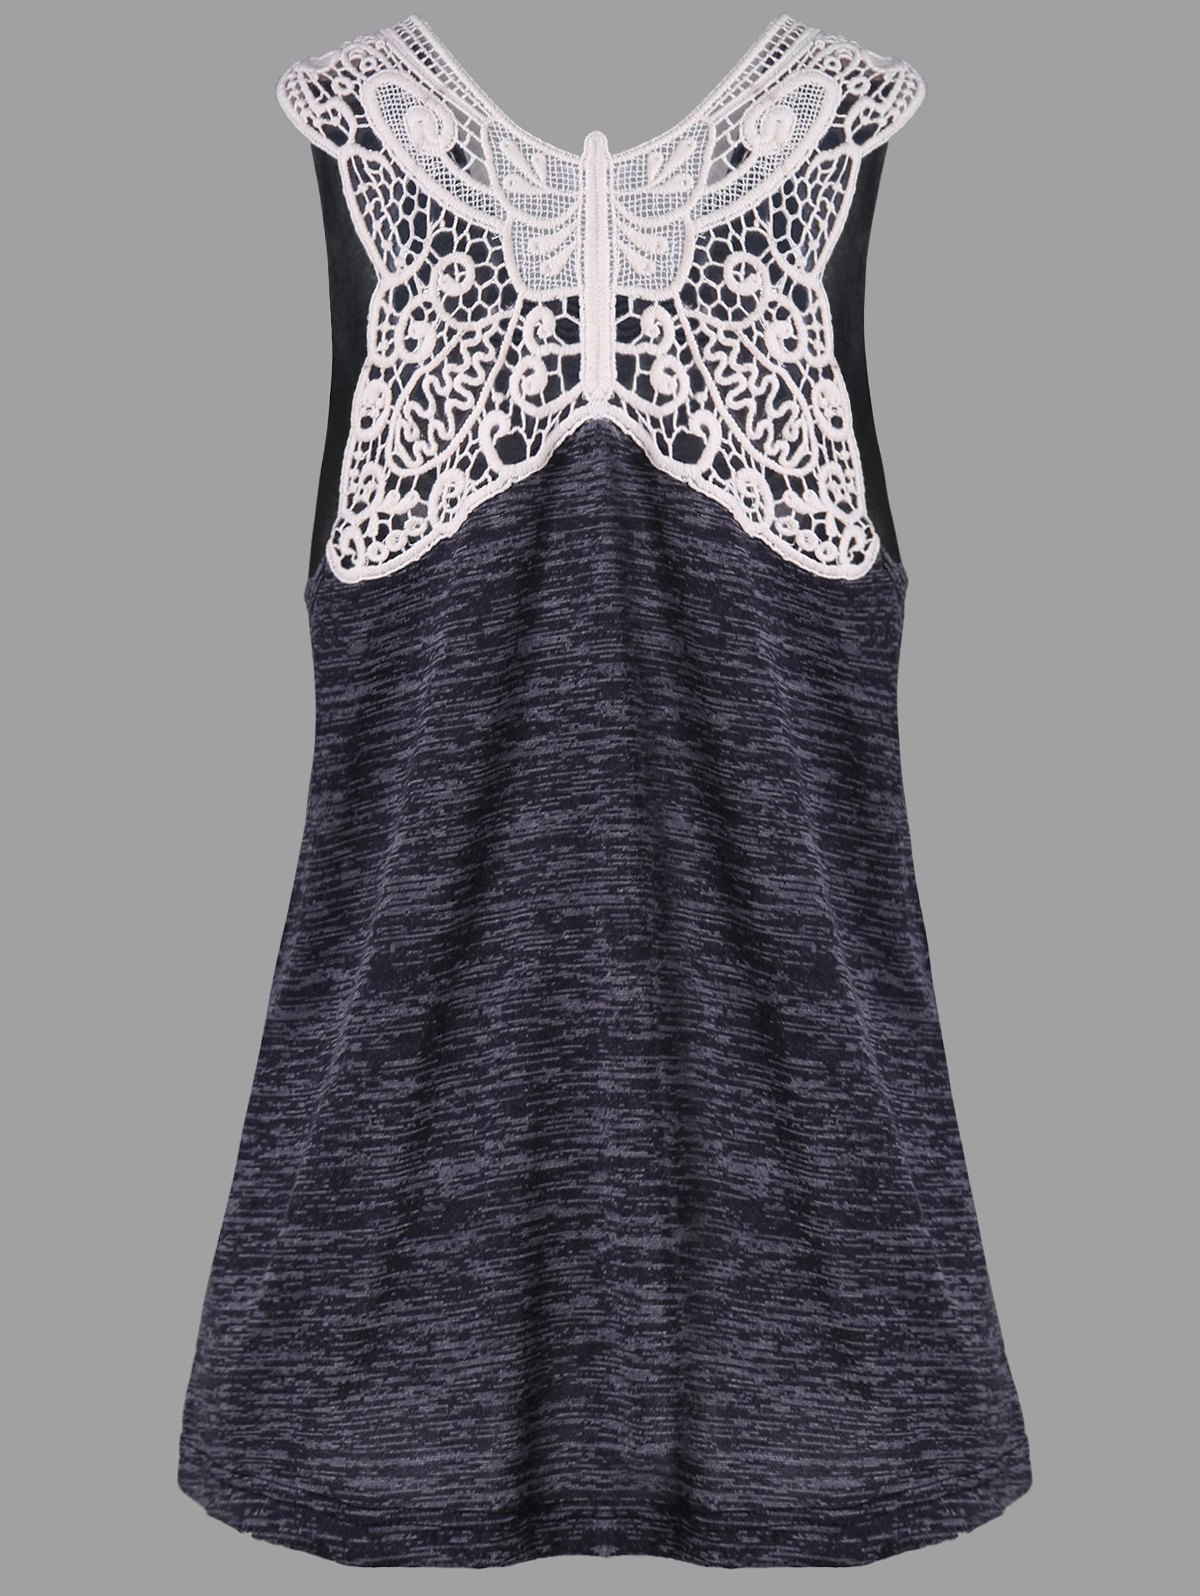 Butterfly Lace Panel Tank Top - CARBON GRAY L